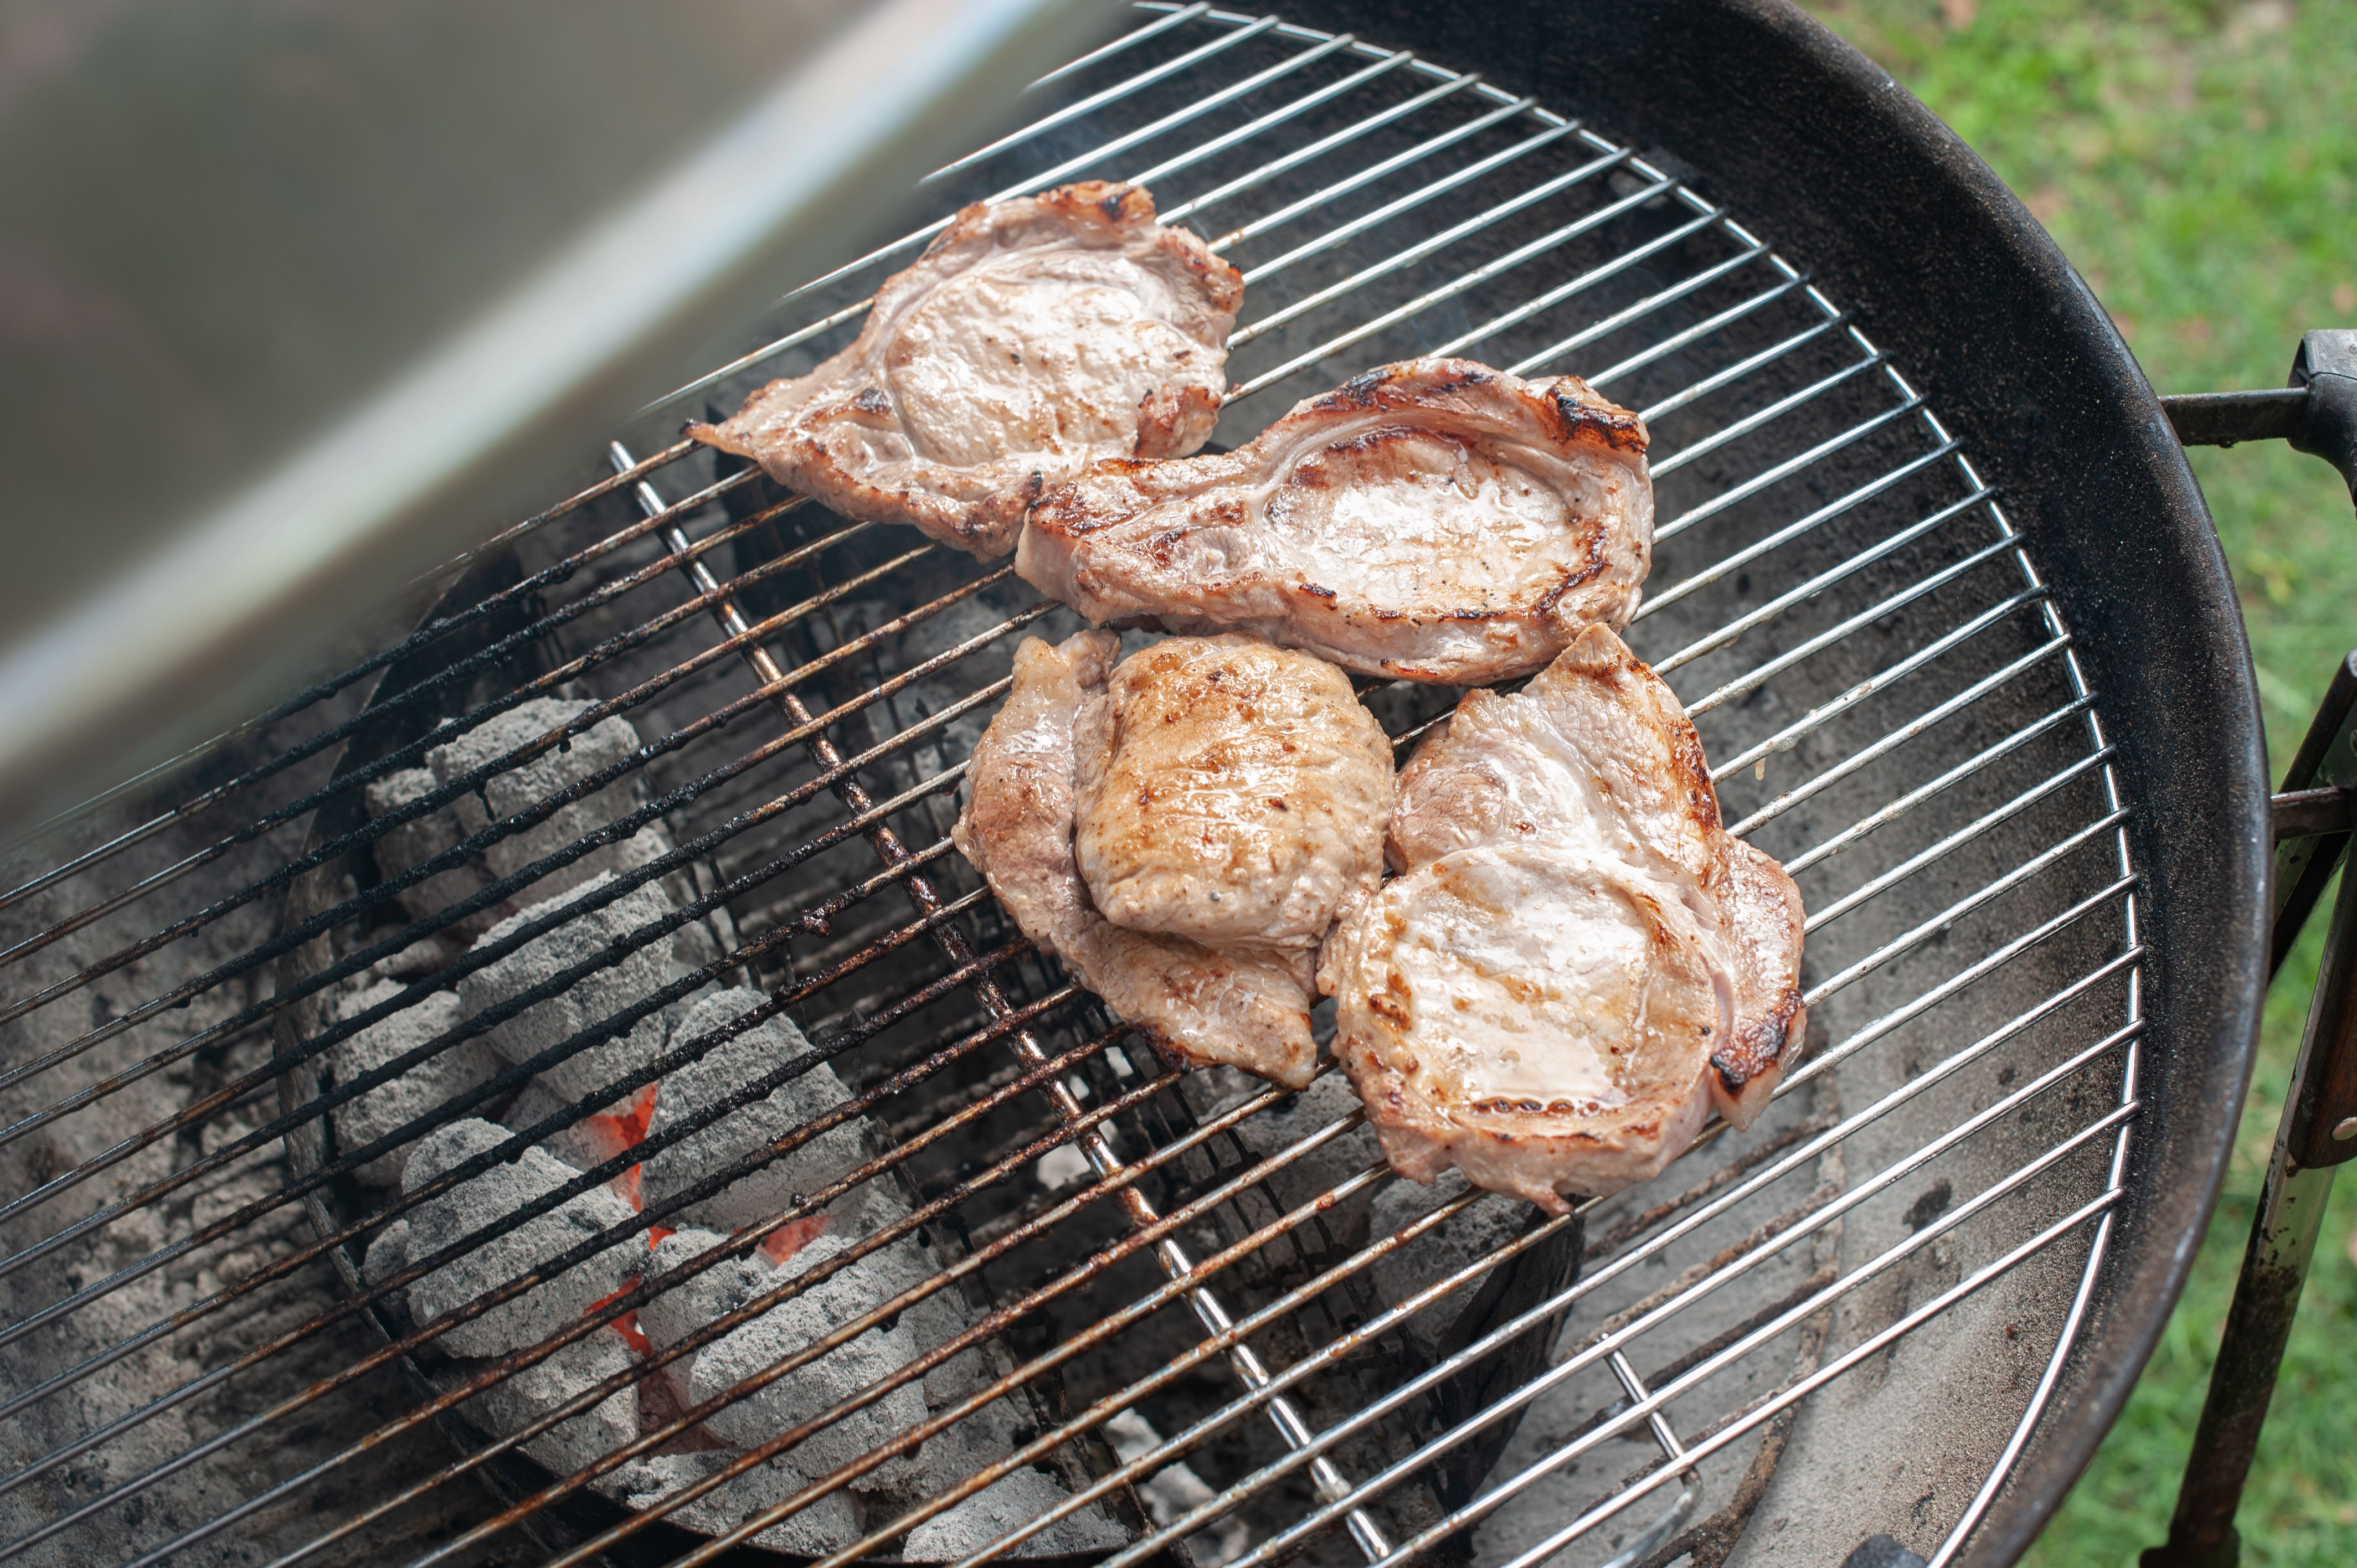 Grilling pork chops marinated in ranch dressing